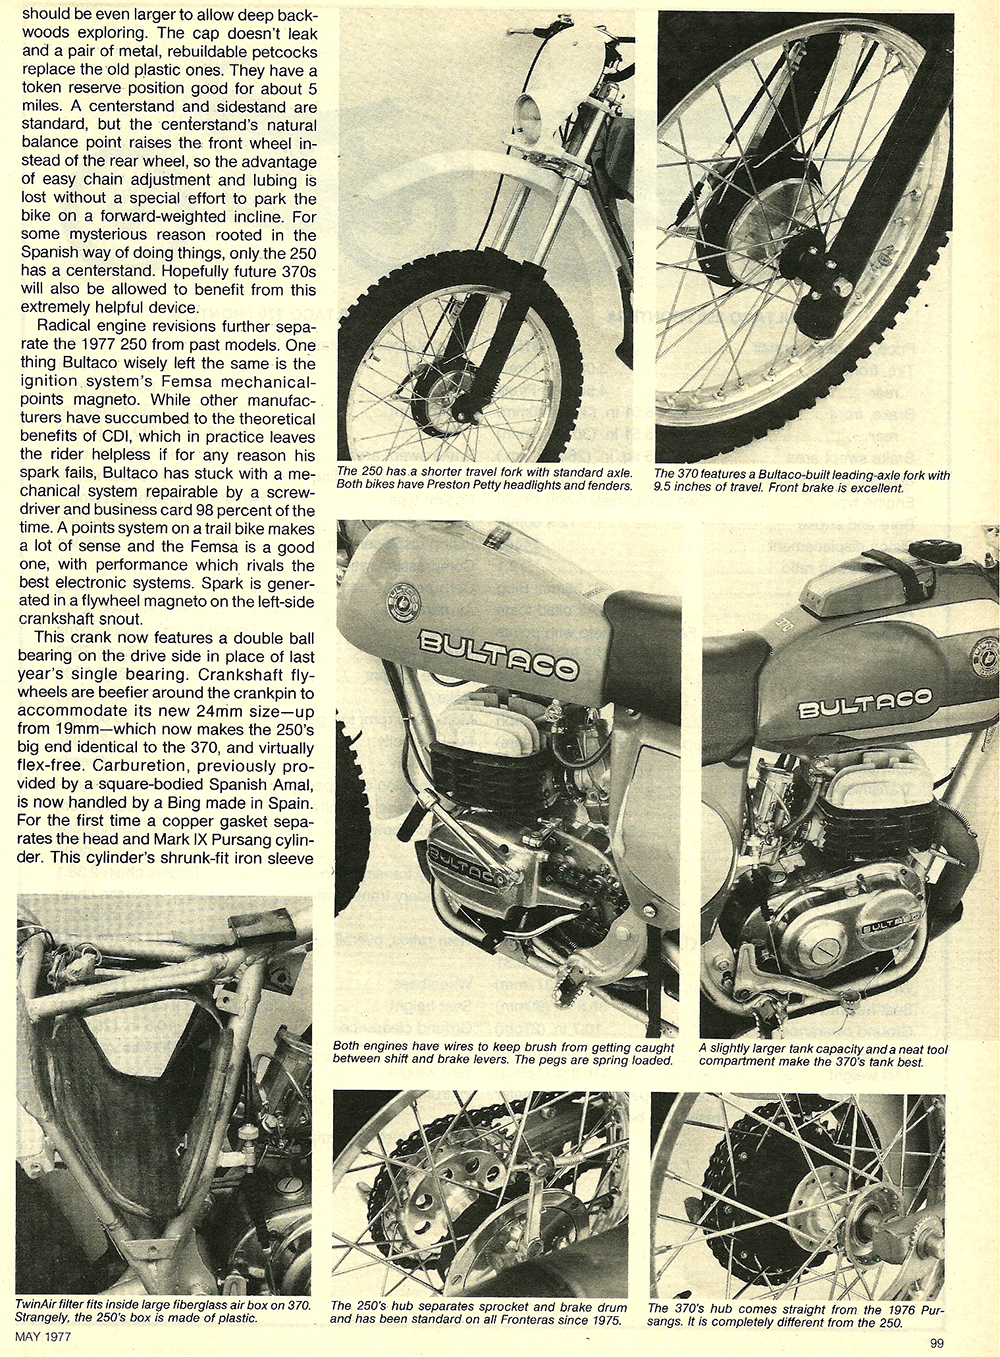 1977 Bultaco 250 and 380 Frontera road test 4.jpg